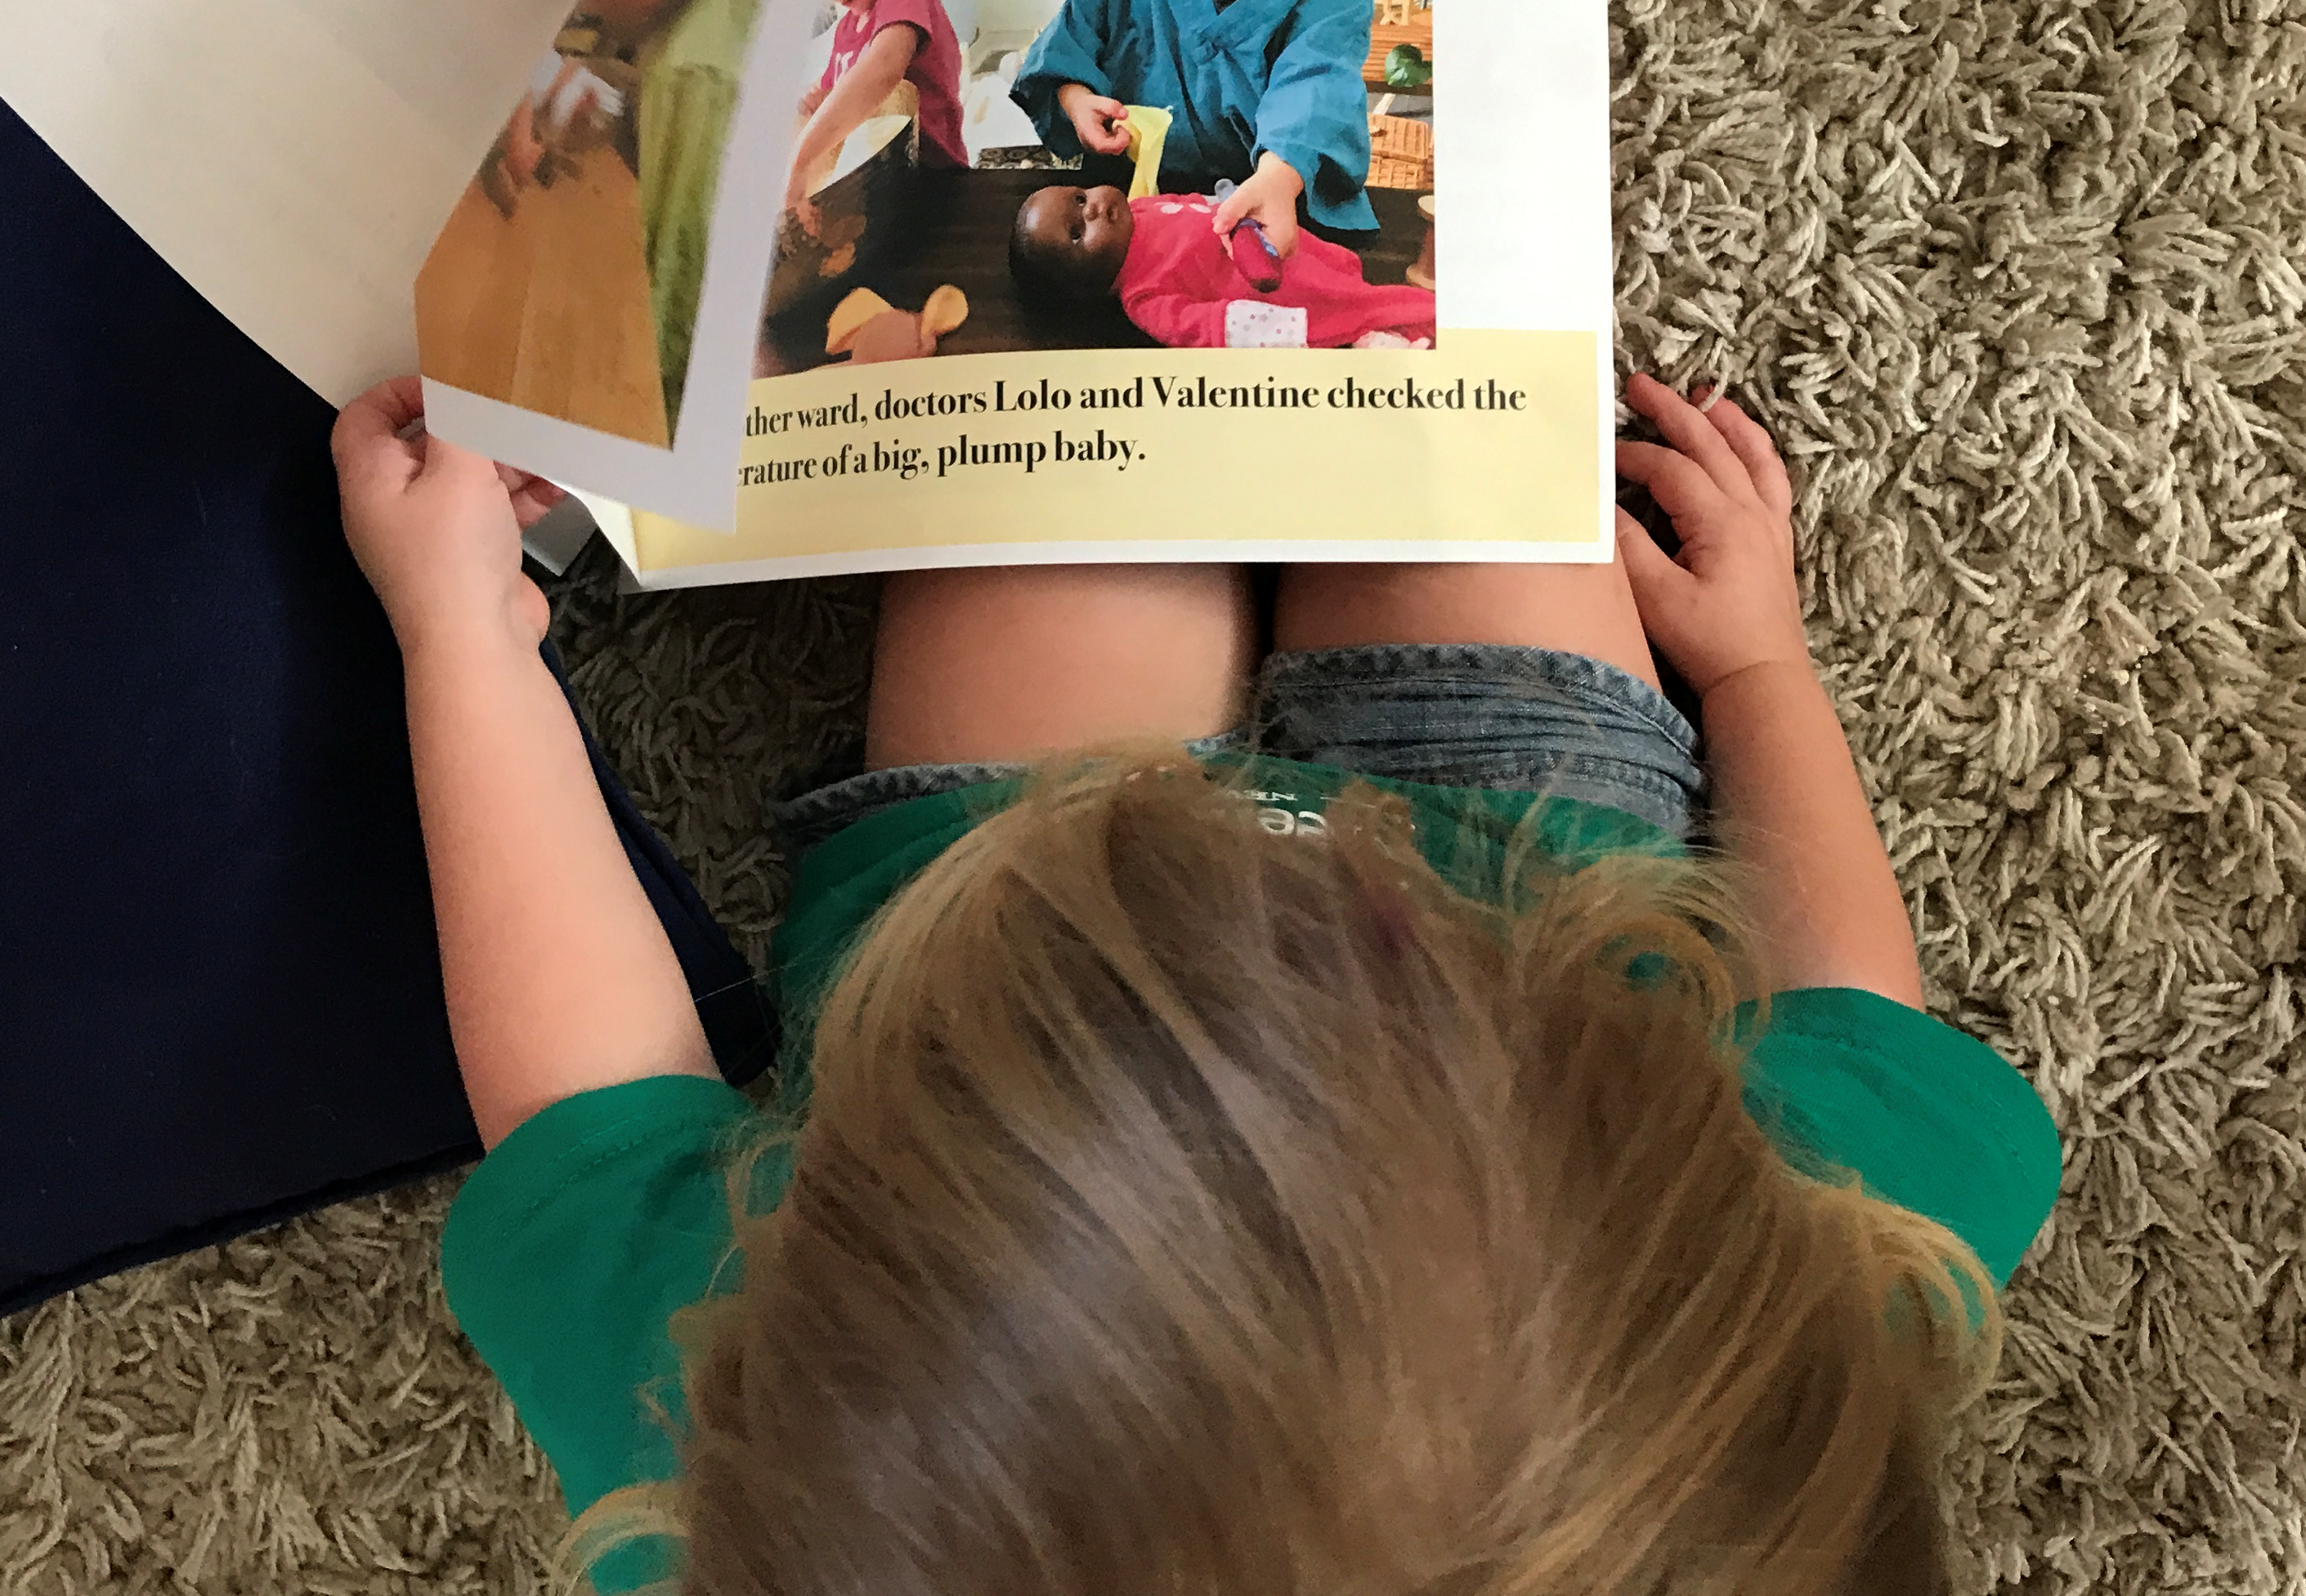 A child looks at the play story booklet about doctors and babydolls.